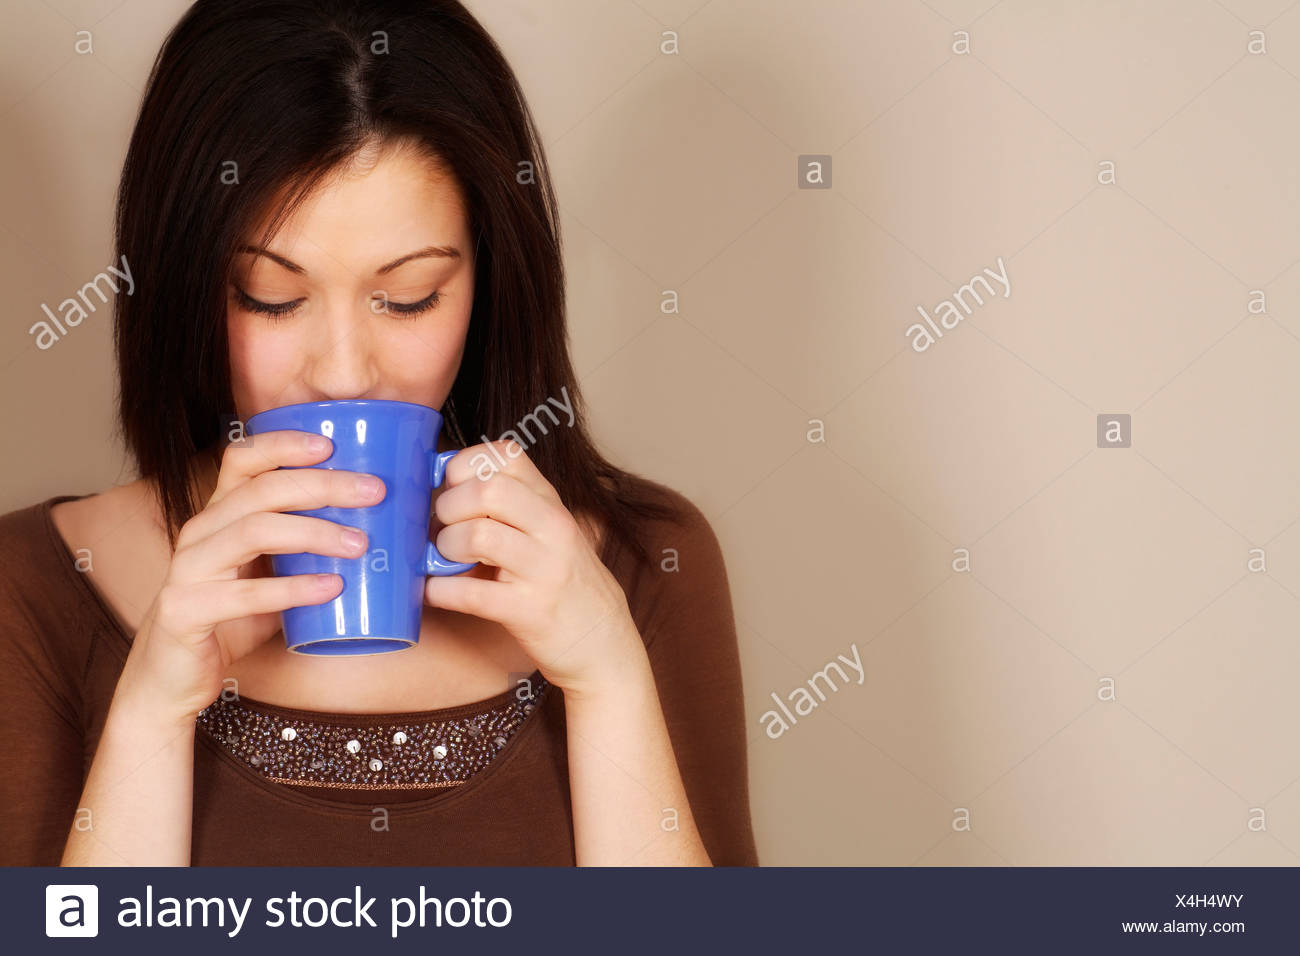 Woman drinking a hot drink - Stock Image